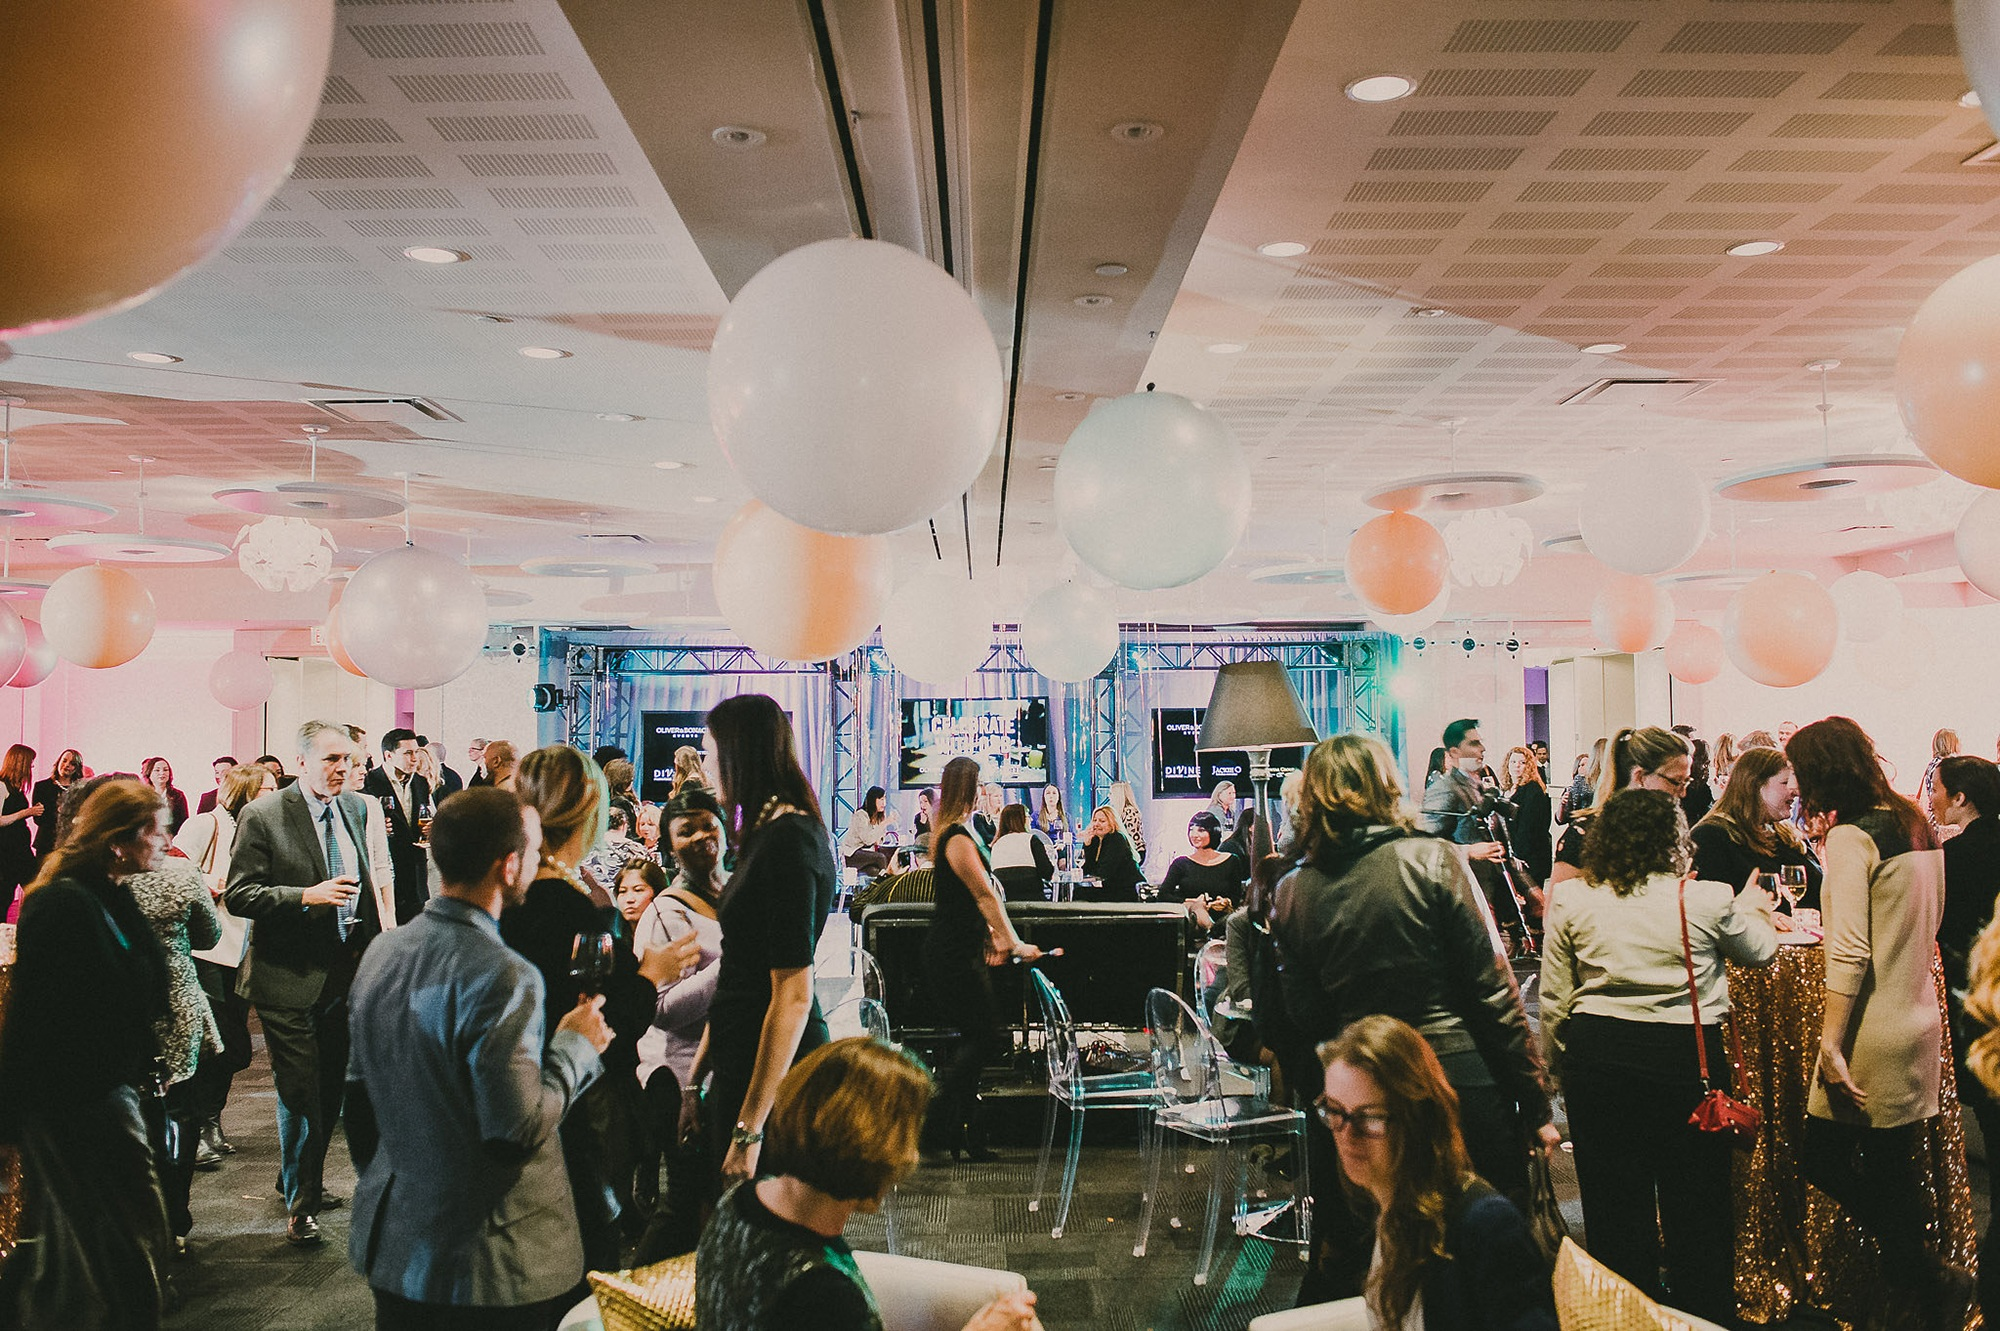 Book Your Holiday Party at Toronto Region Board of Trade